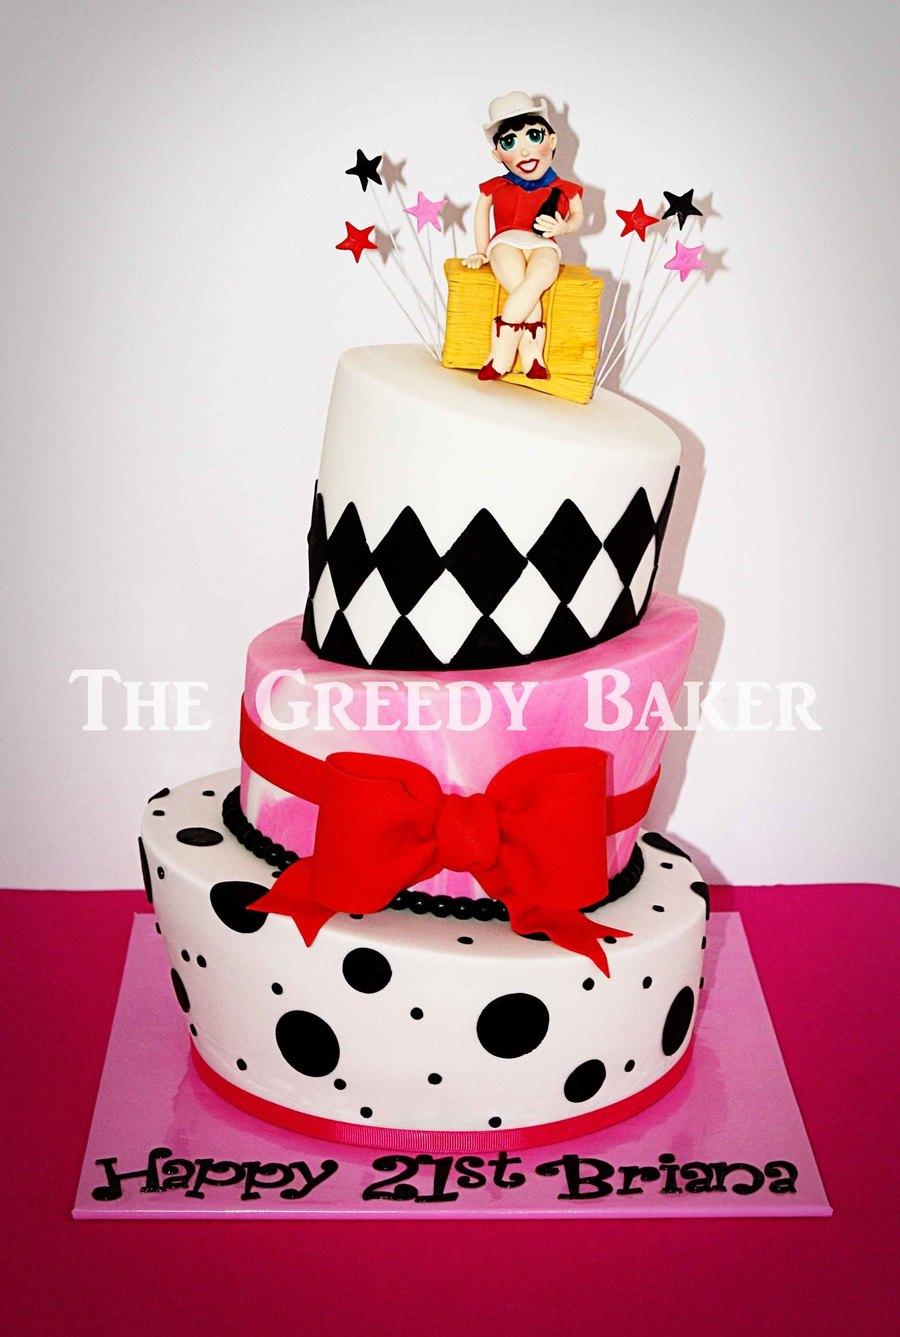 Based On A Pink Cake Box Design With A Topper Suited To The Party Invitation on Cake Central